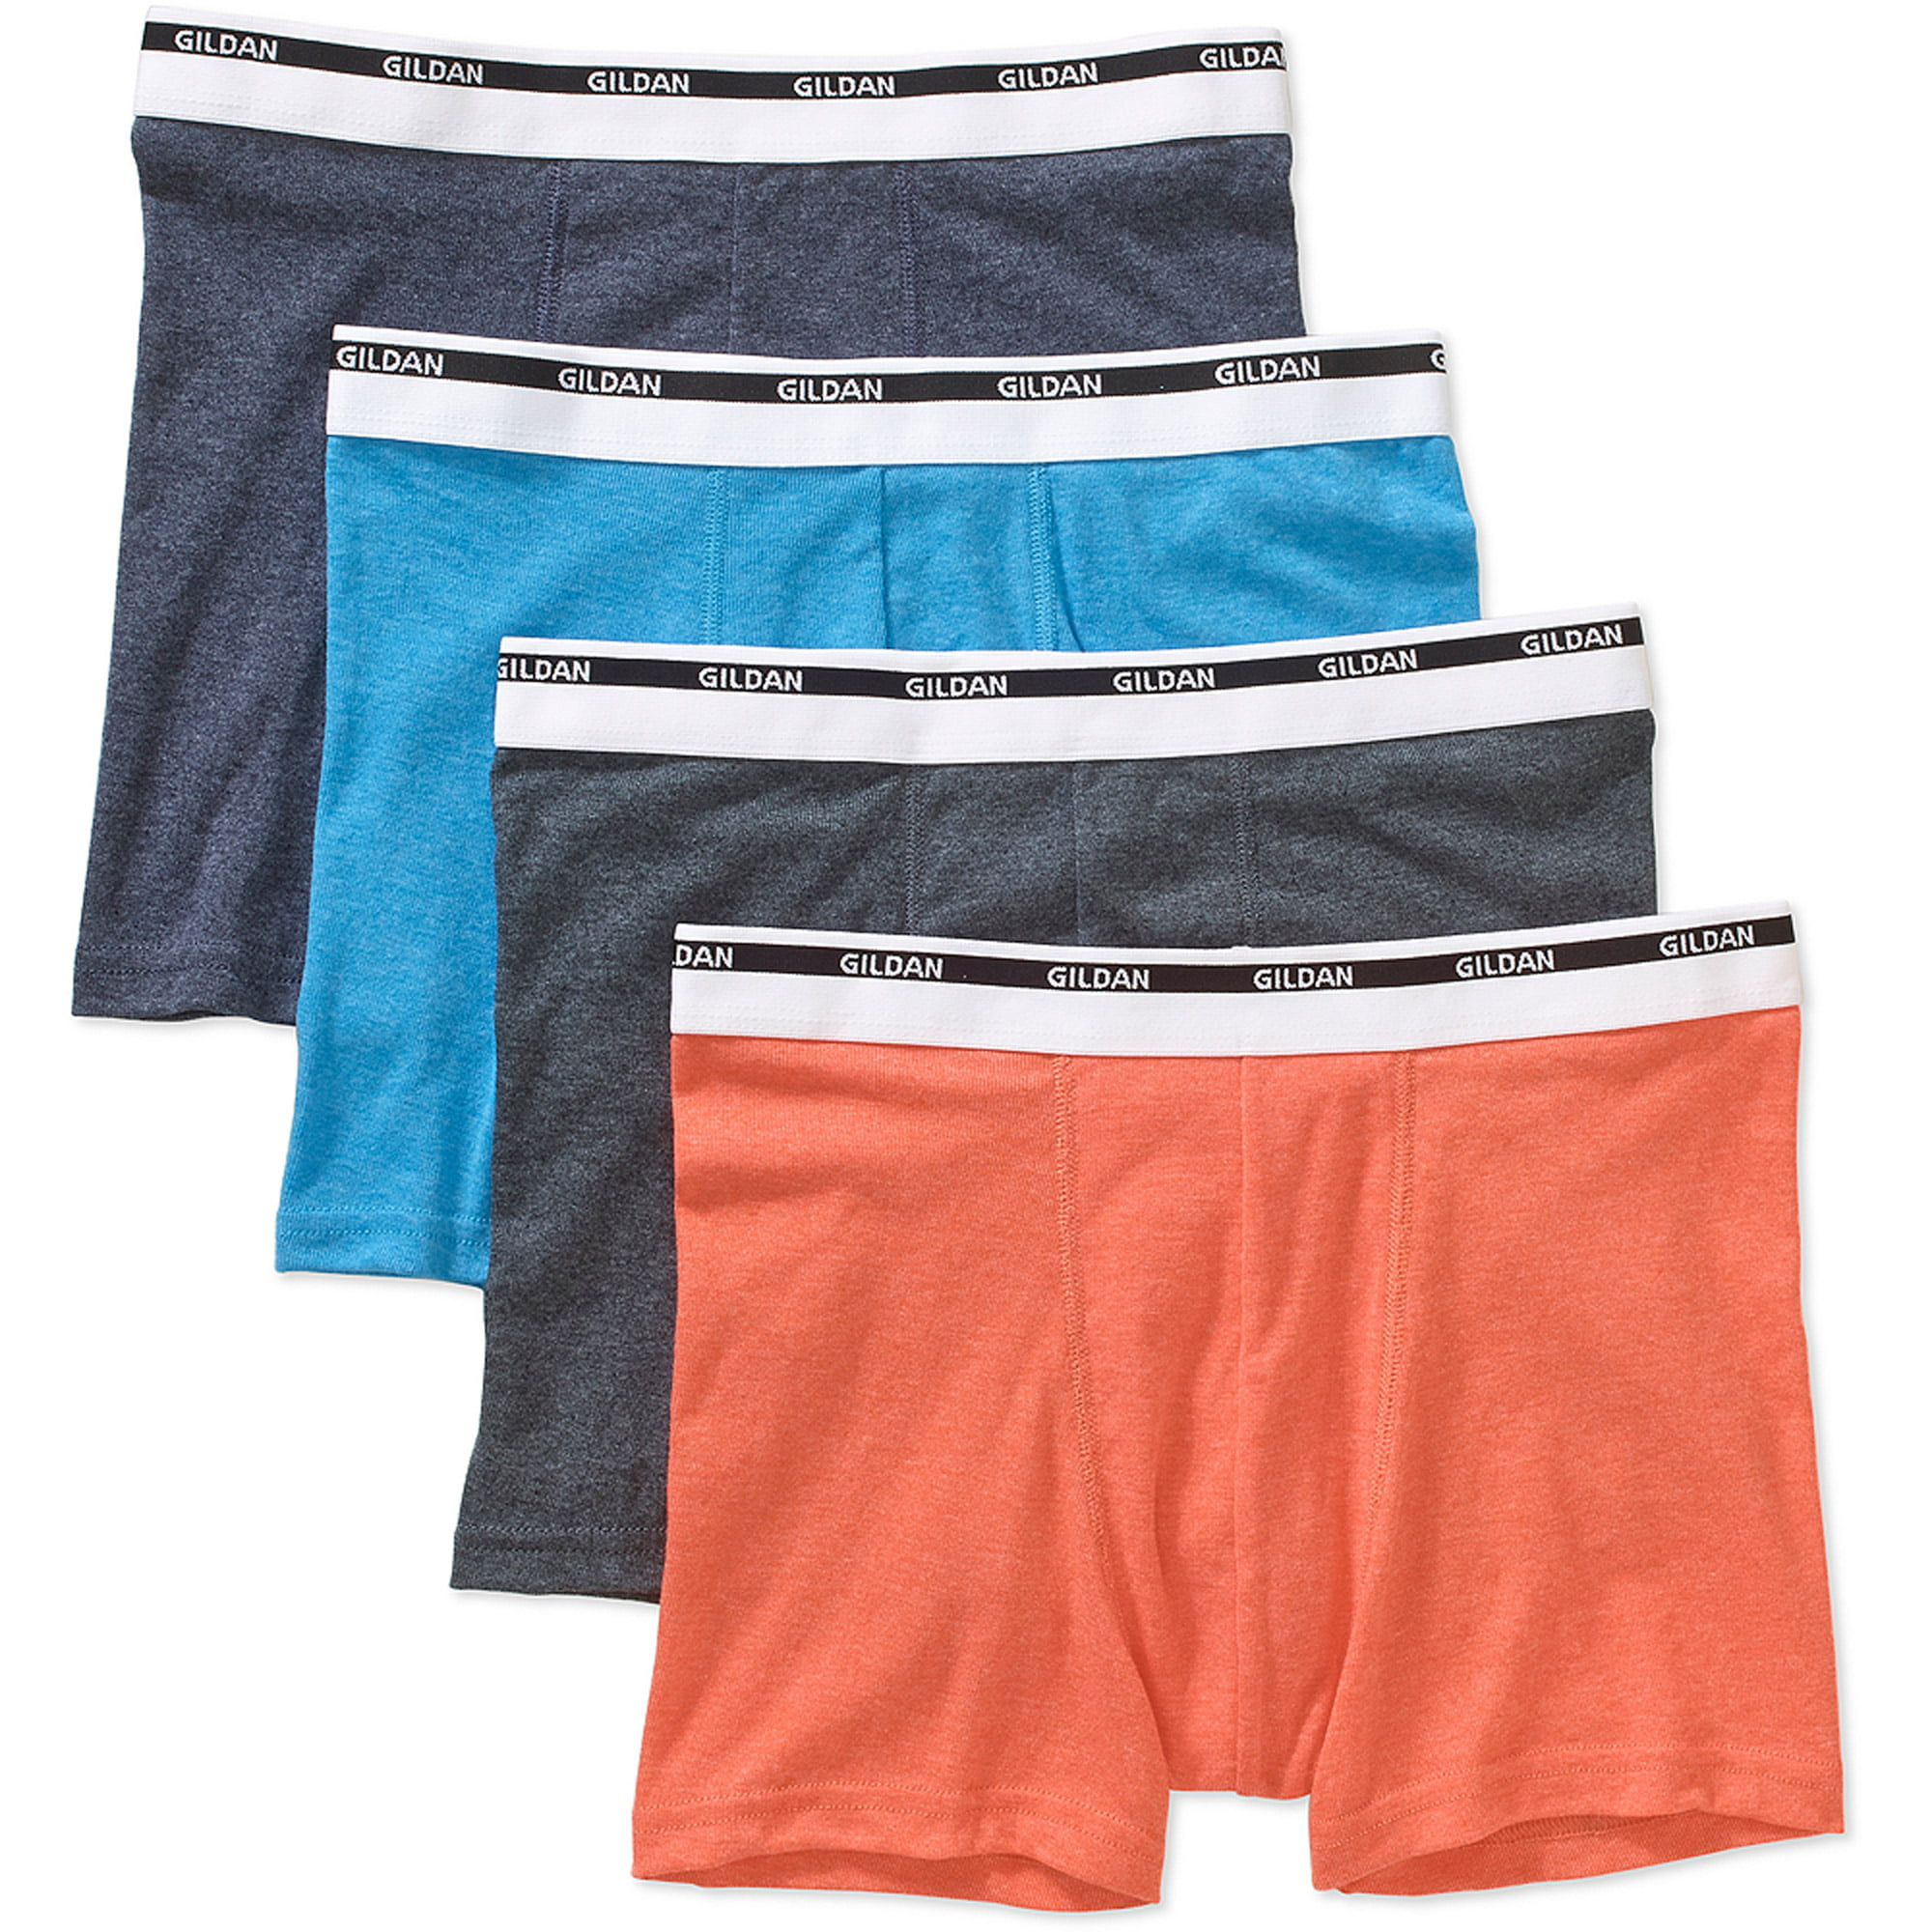 Gildan Men's Trunk Brief 4 Pack, Colors May Vary by